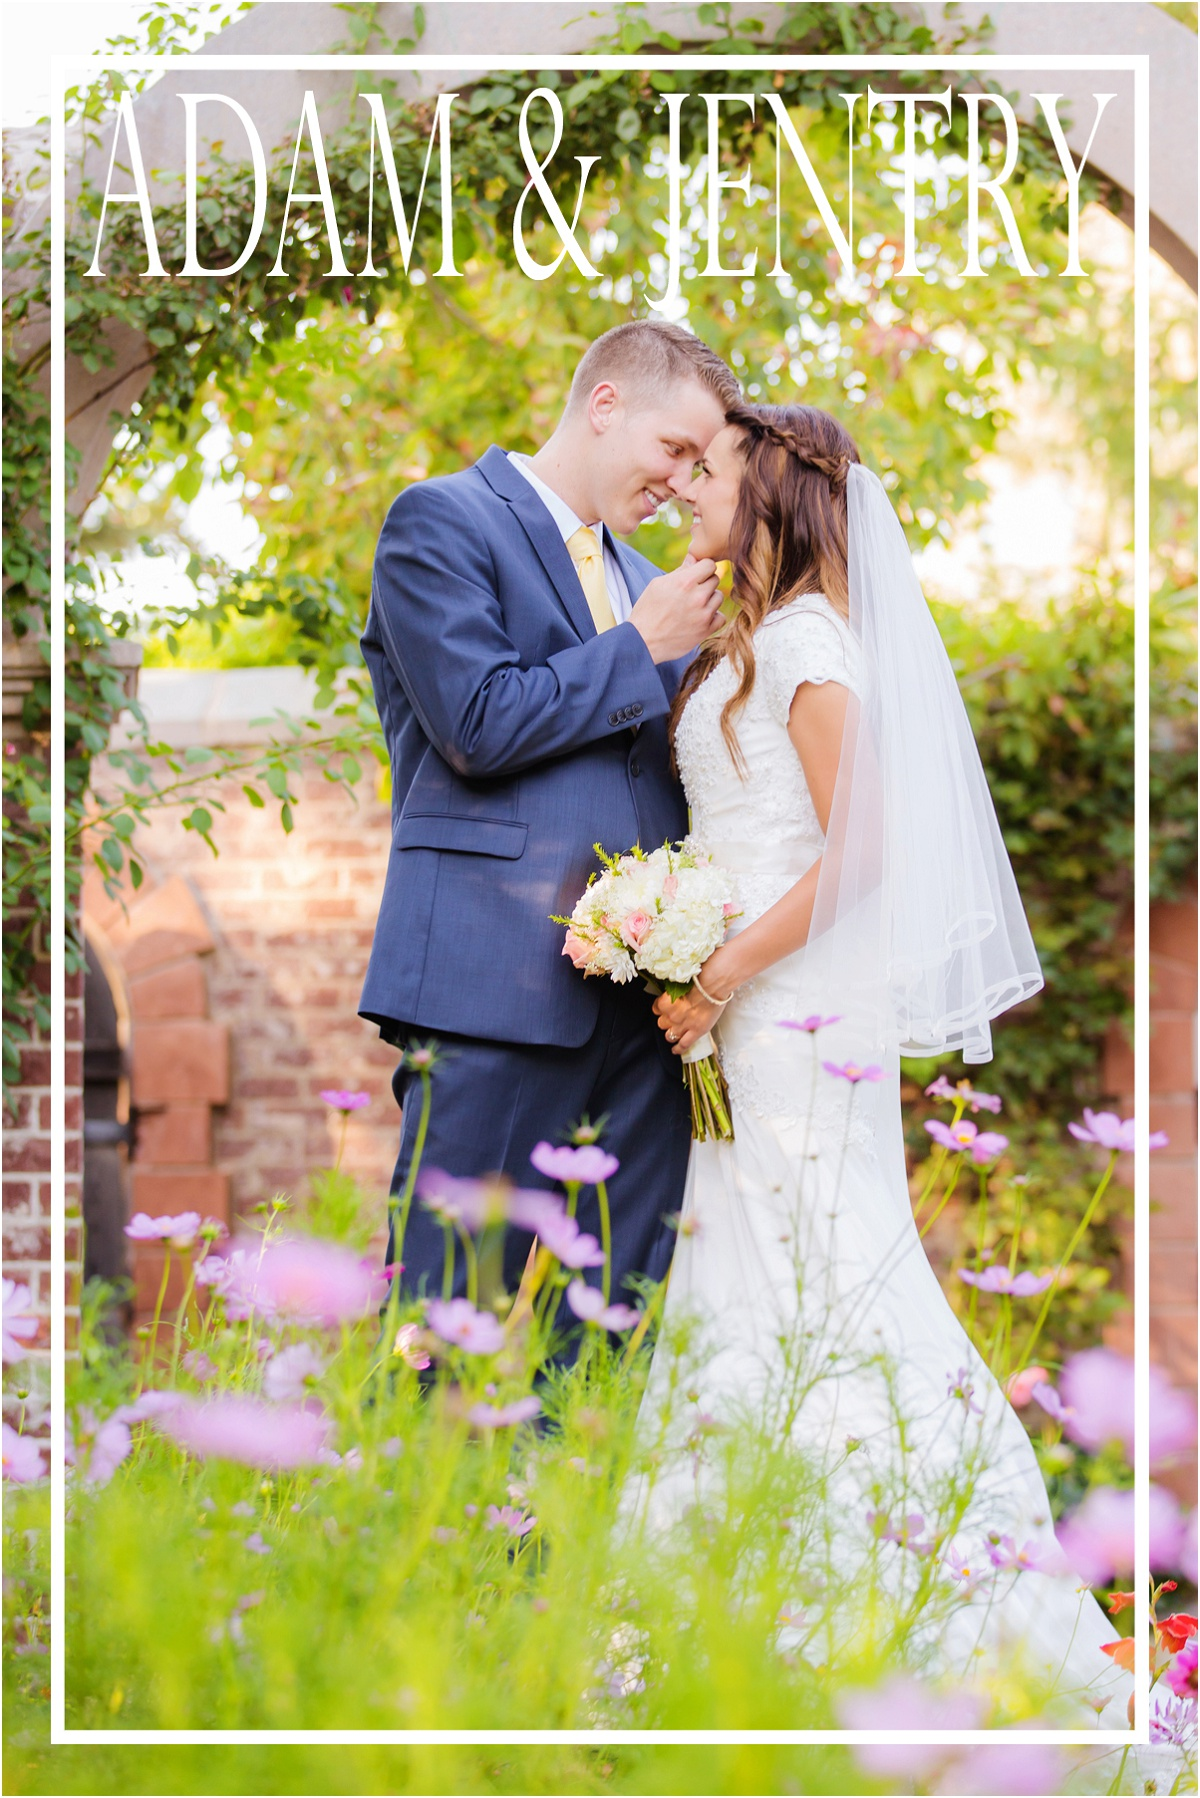 Terra Cooper Photography Weddings Brides 2015_5374.jpg